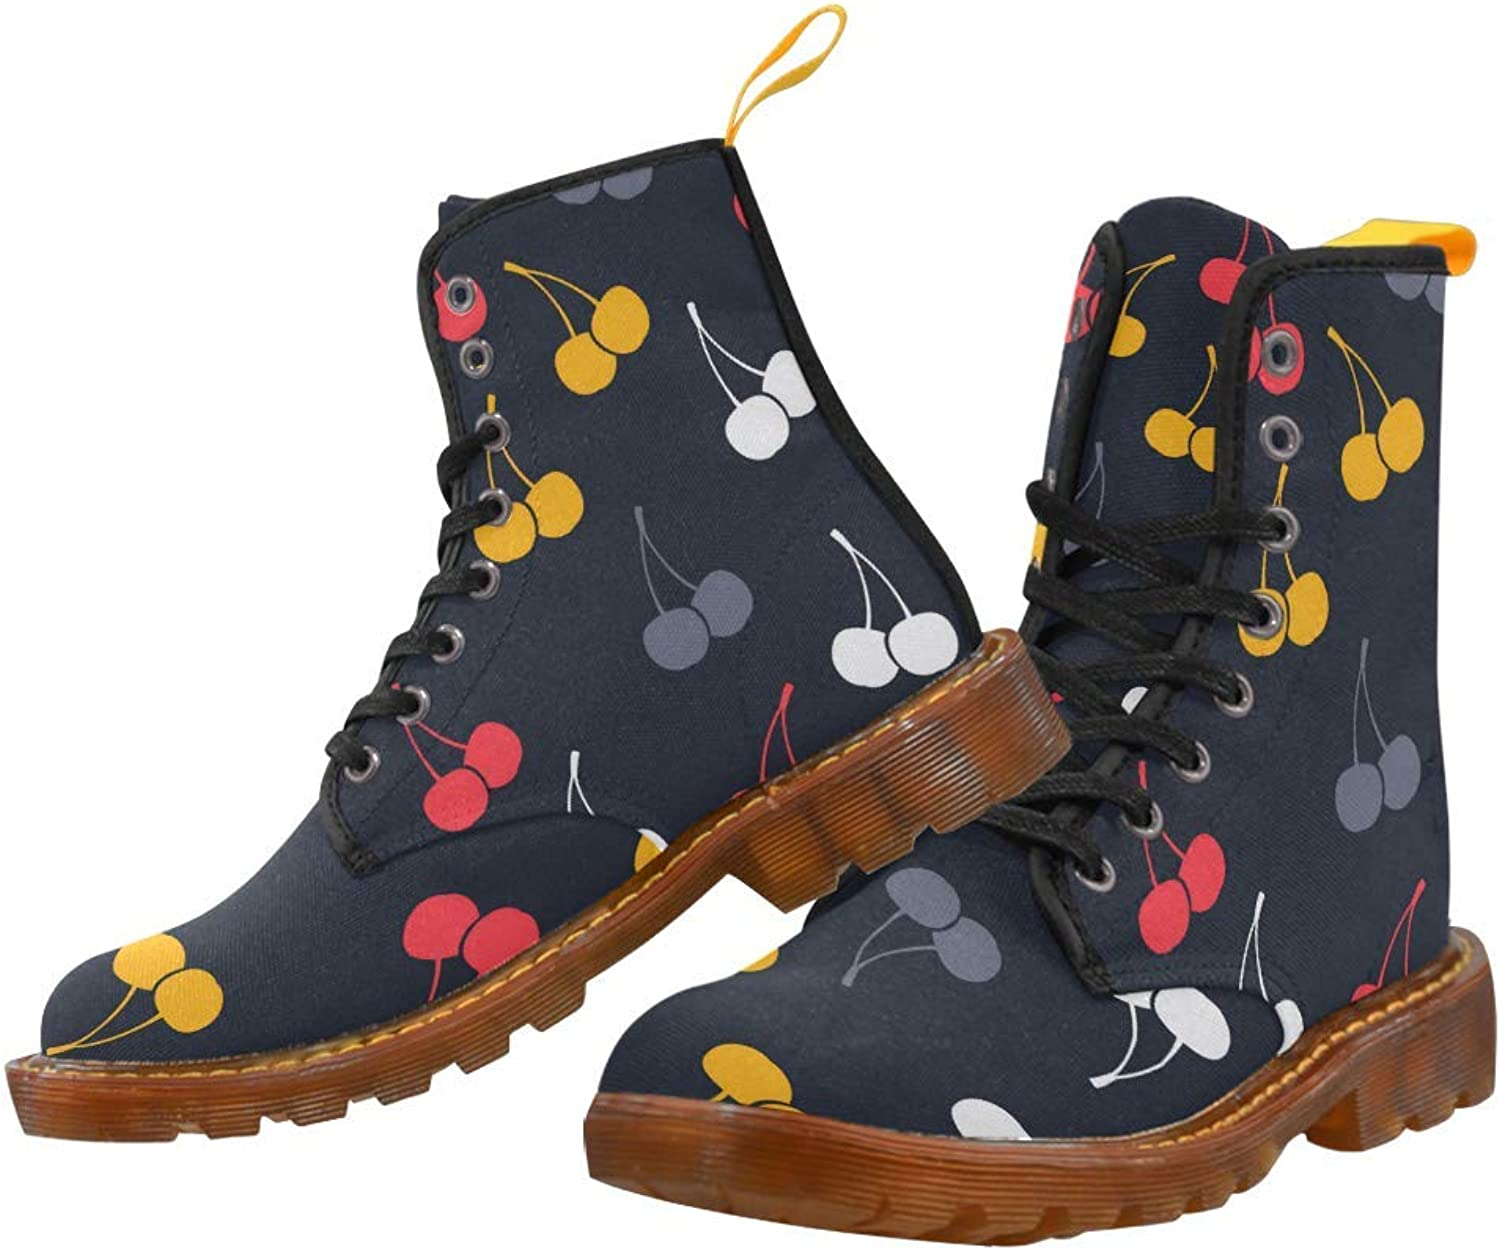 InterestPrint Women's Lace Up Boots colorful Cherries Canvas Martin Boots Combat Ankle Booties shoes